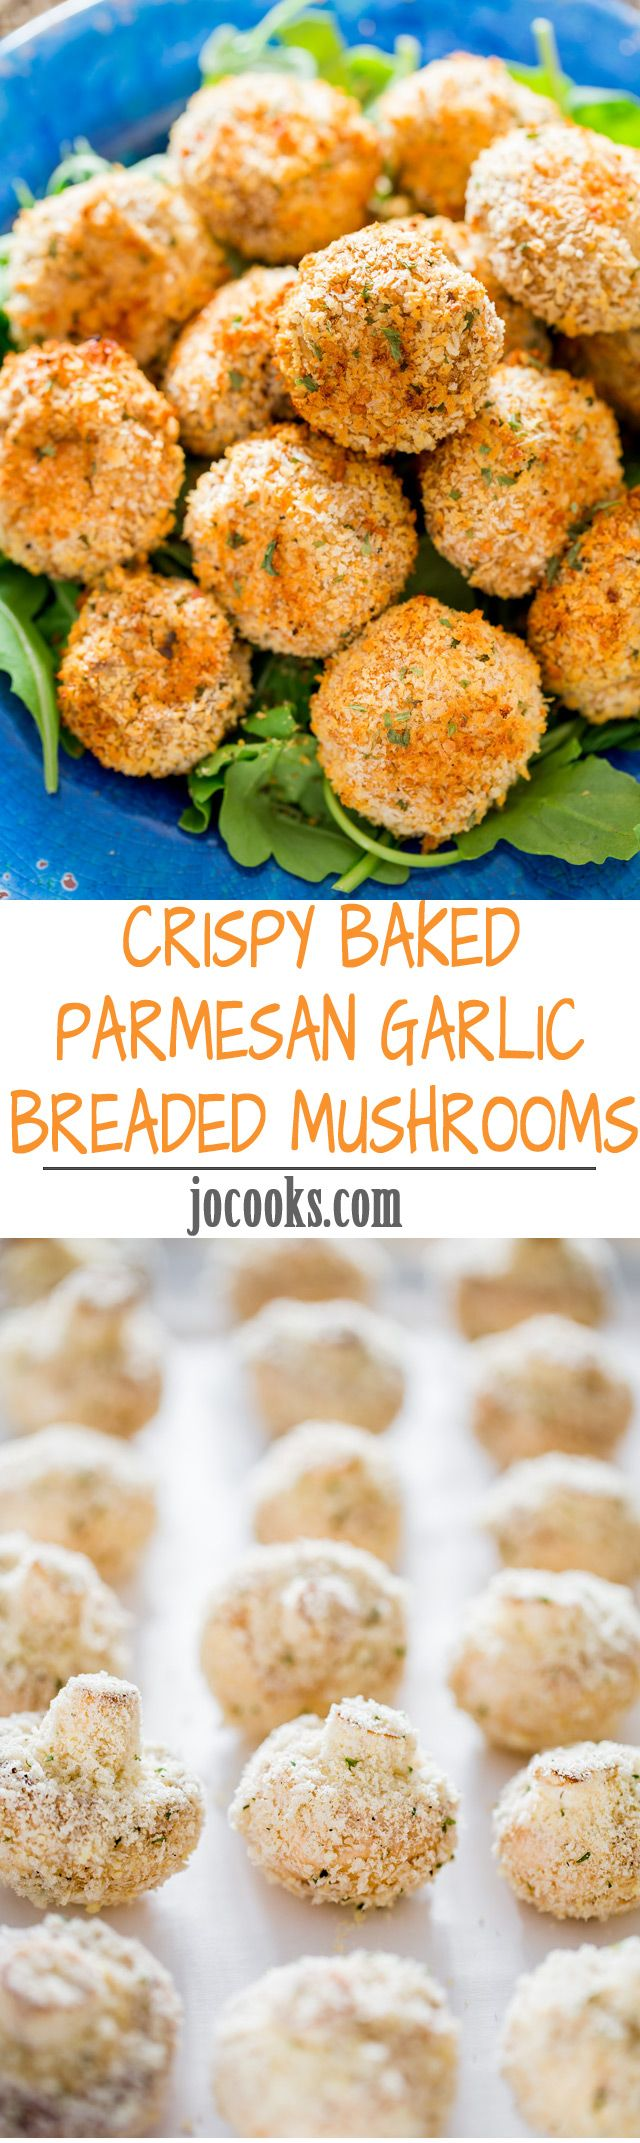 Crispy Baked Parmesan Garlic Breaded Mushrooms – enjoy this restaurant favorite without all the fat an